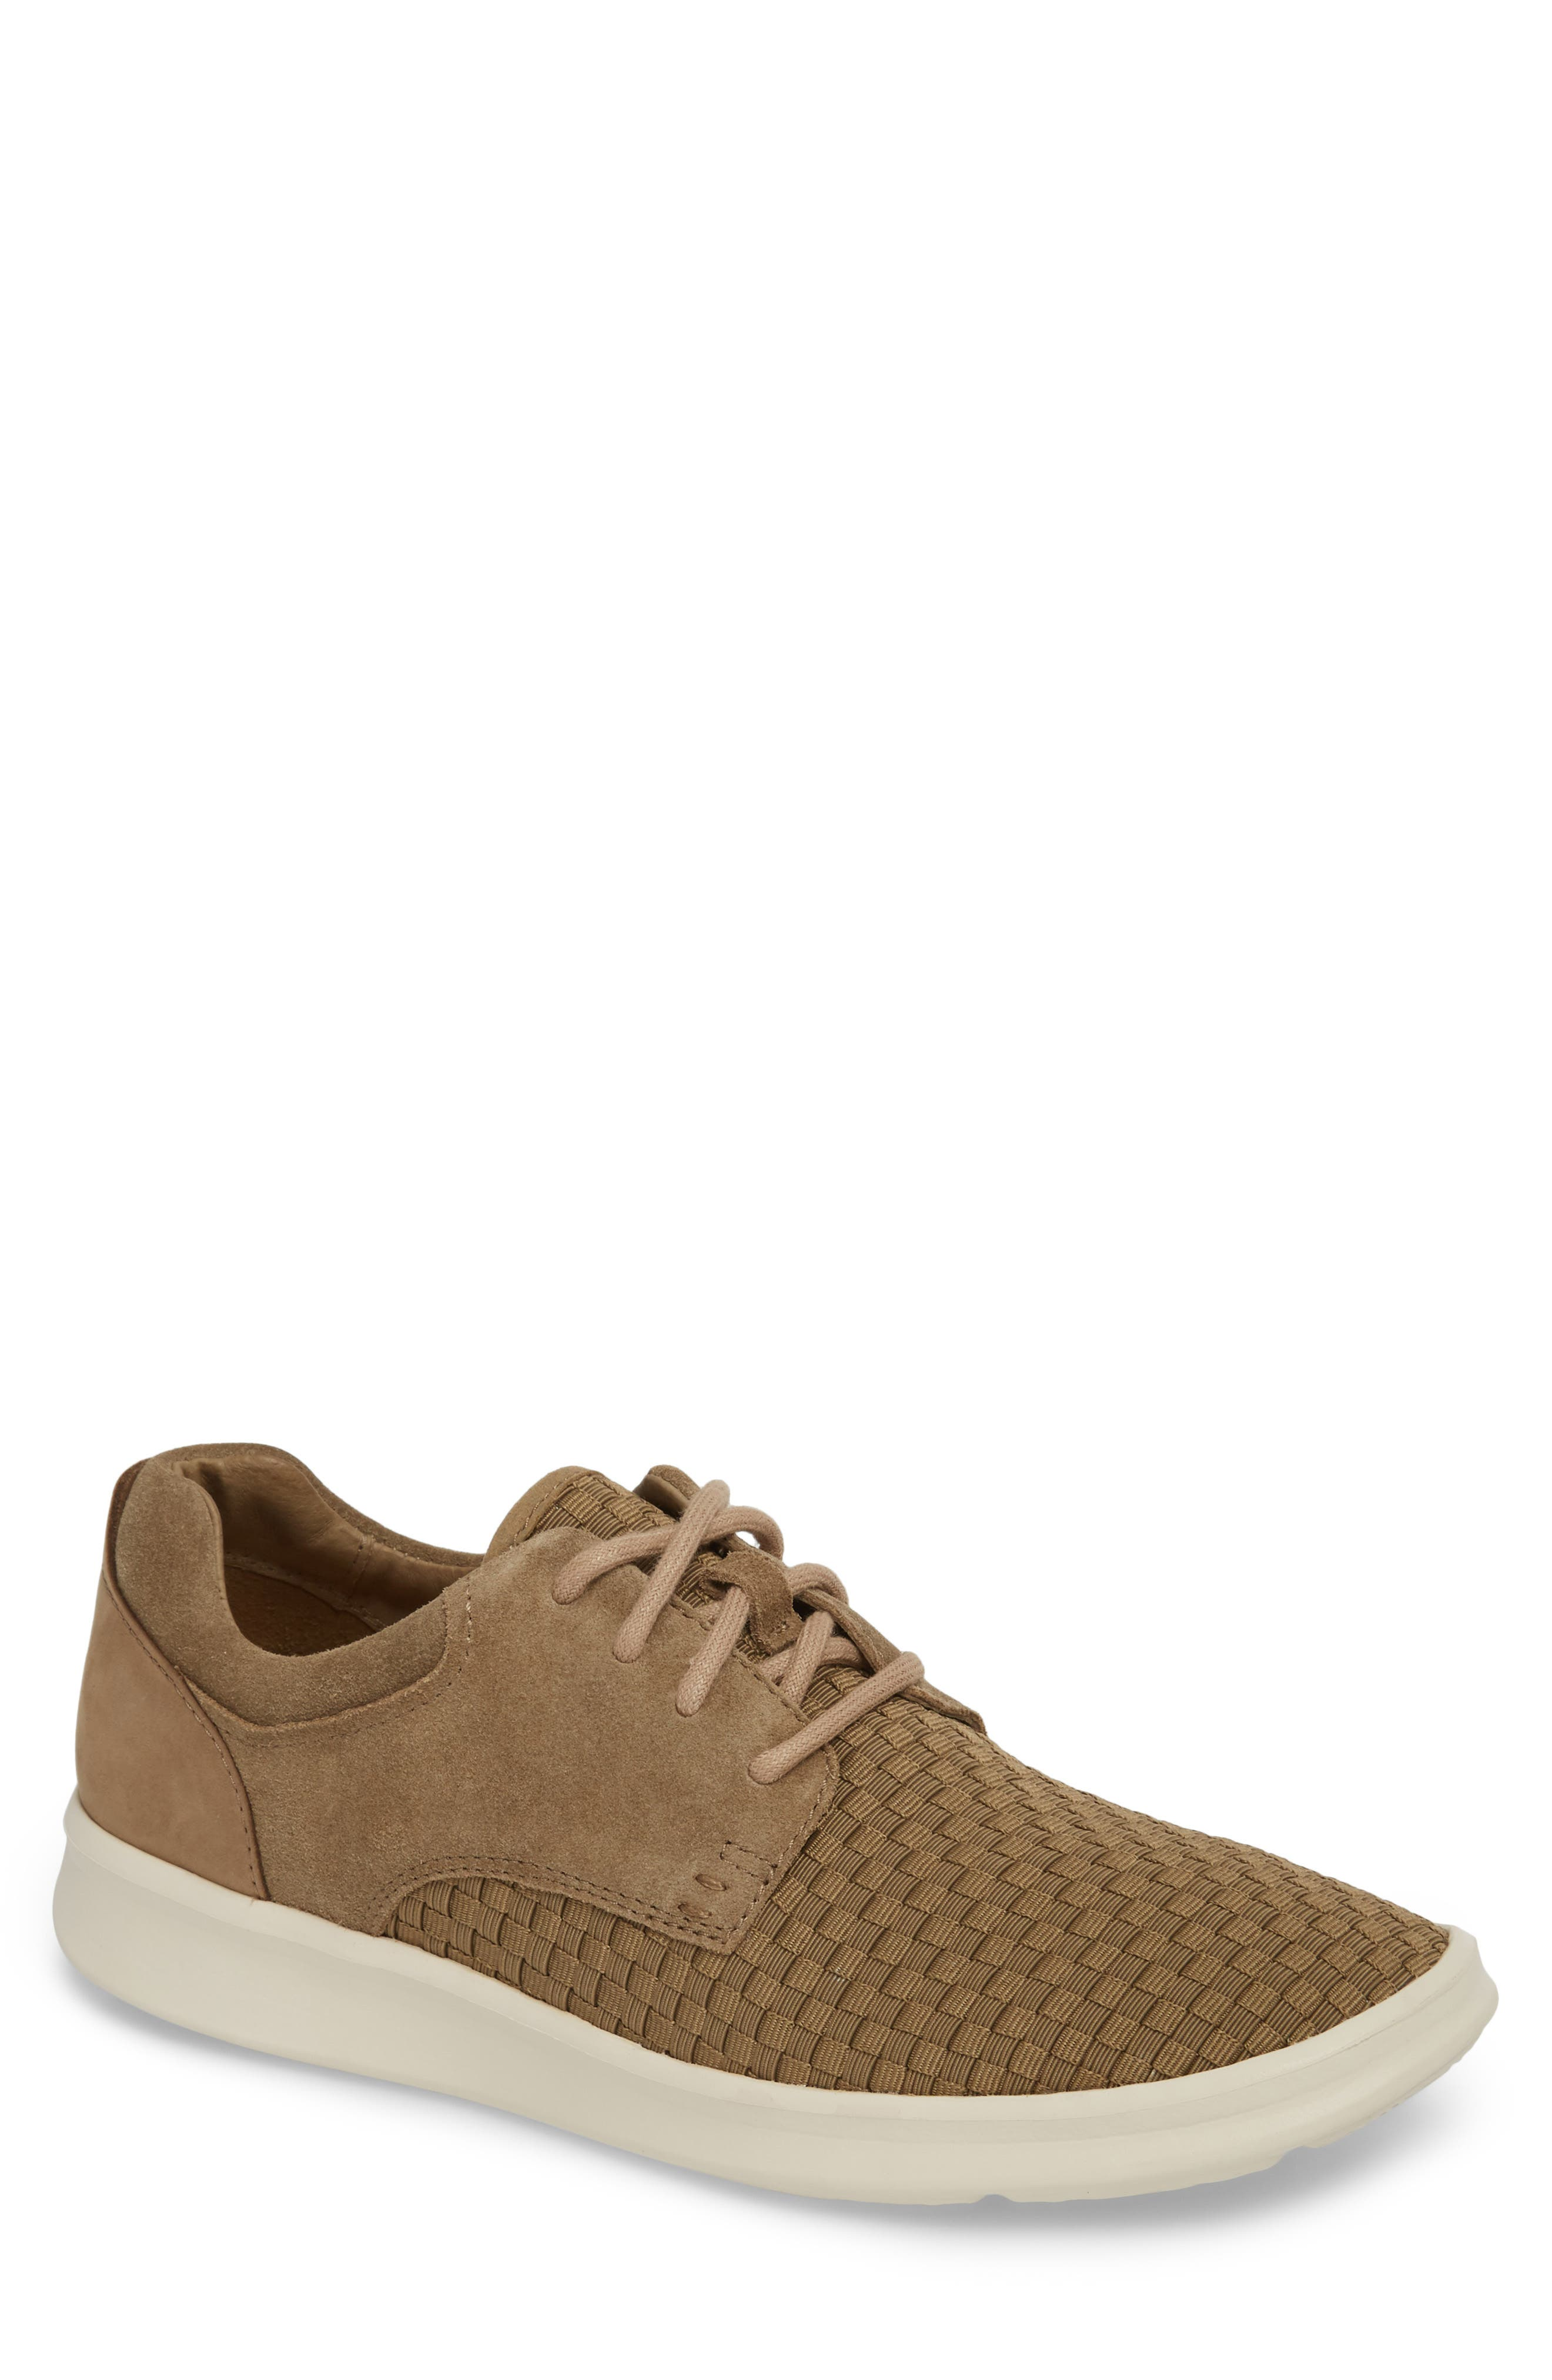 UGG<SUP>®</SUP> 'Hepner' Woven Sneaker, Main, color, ANTILOPE LEATHER